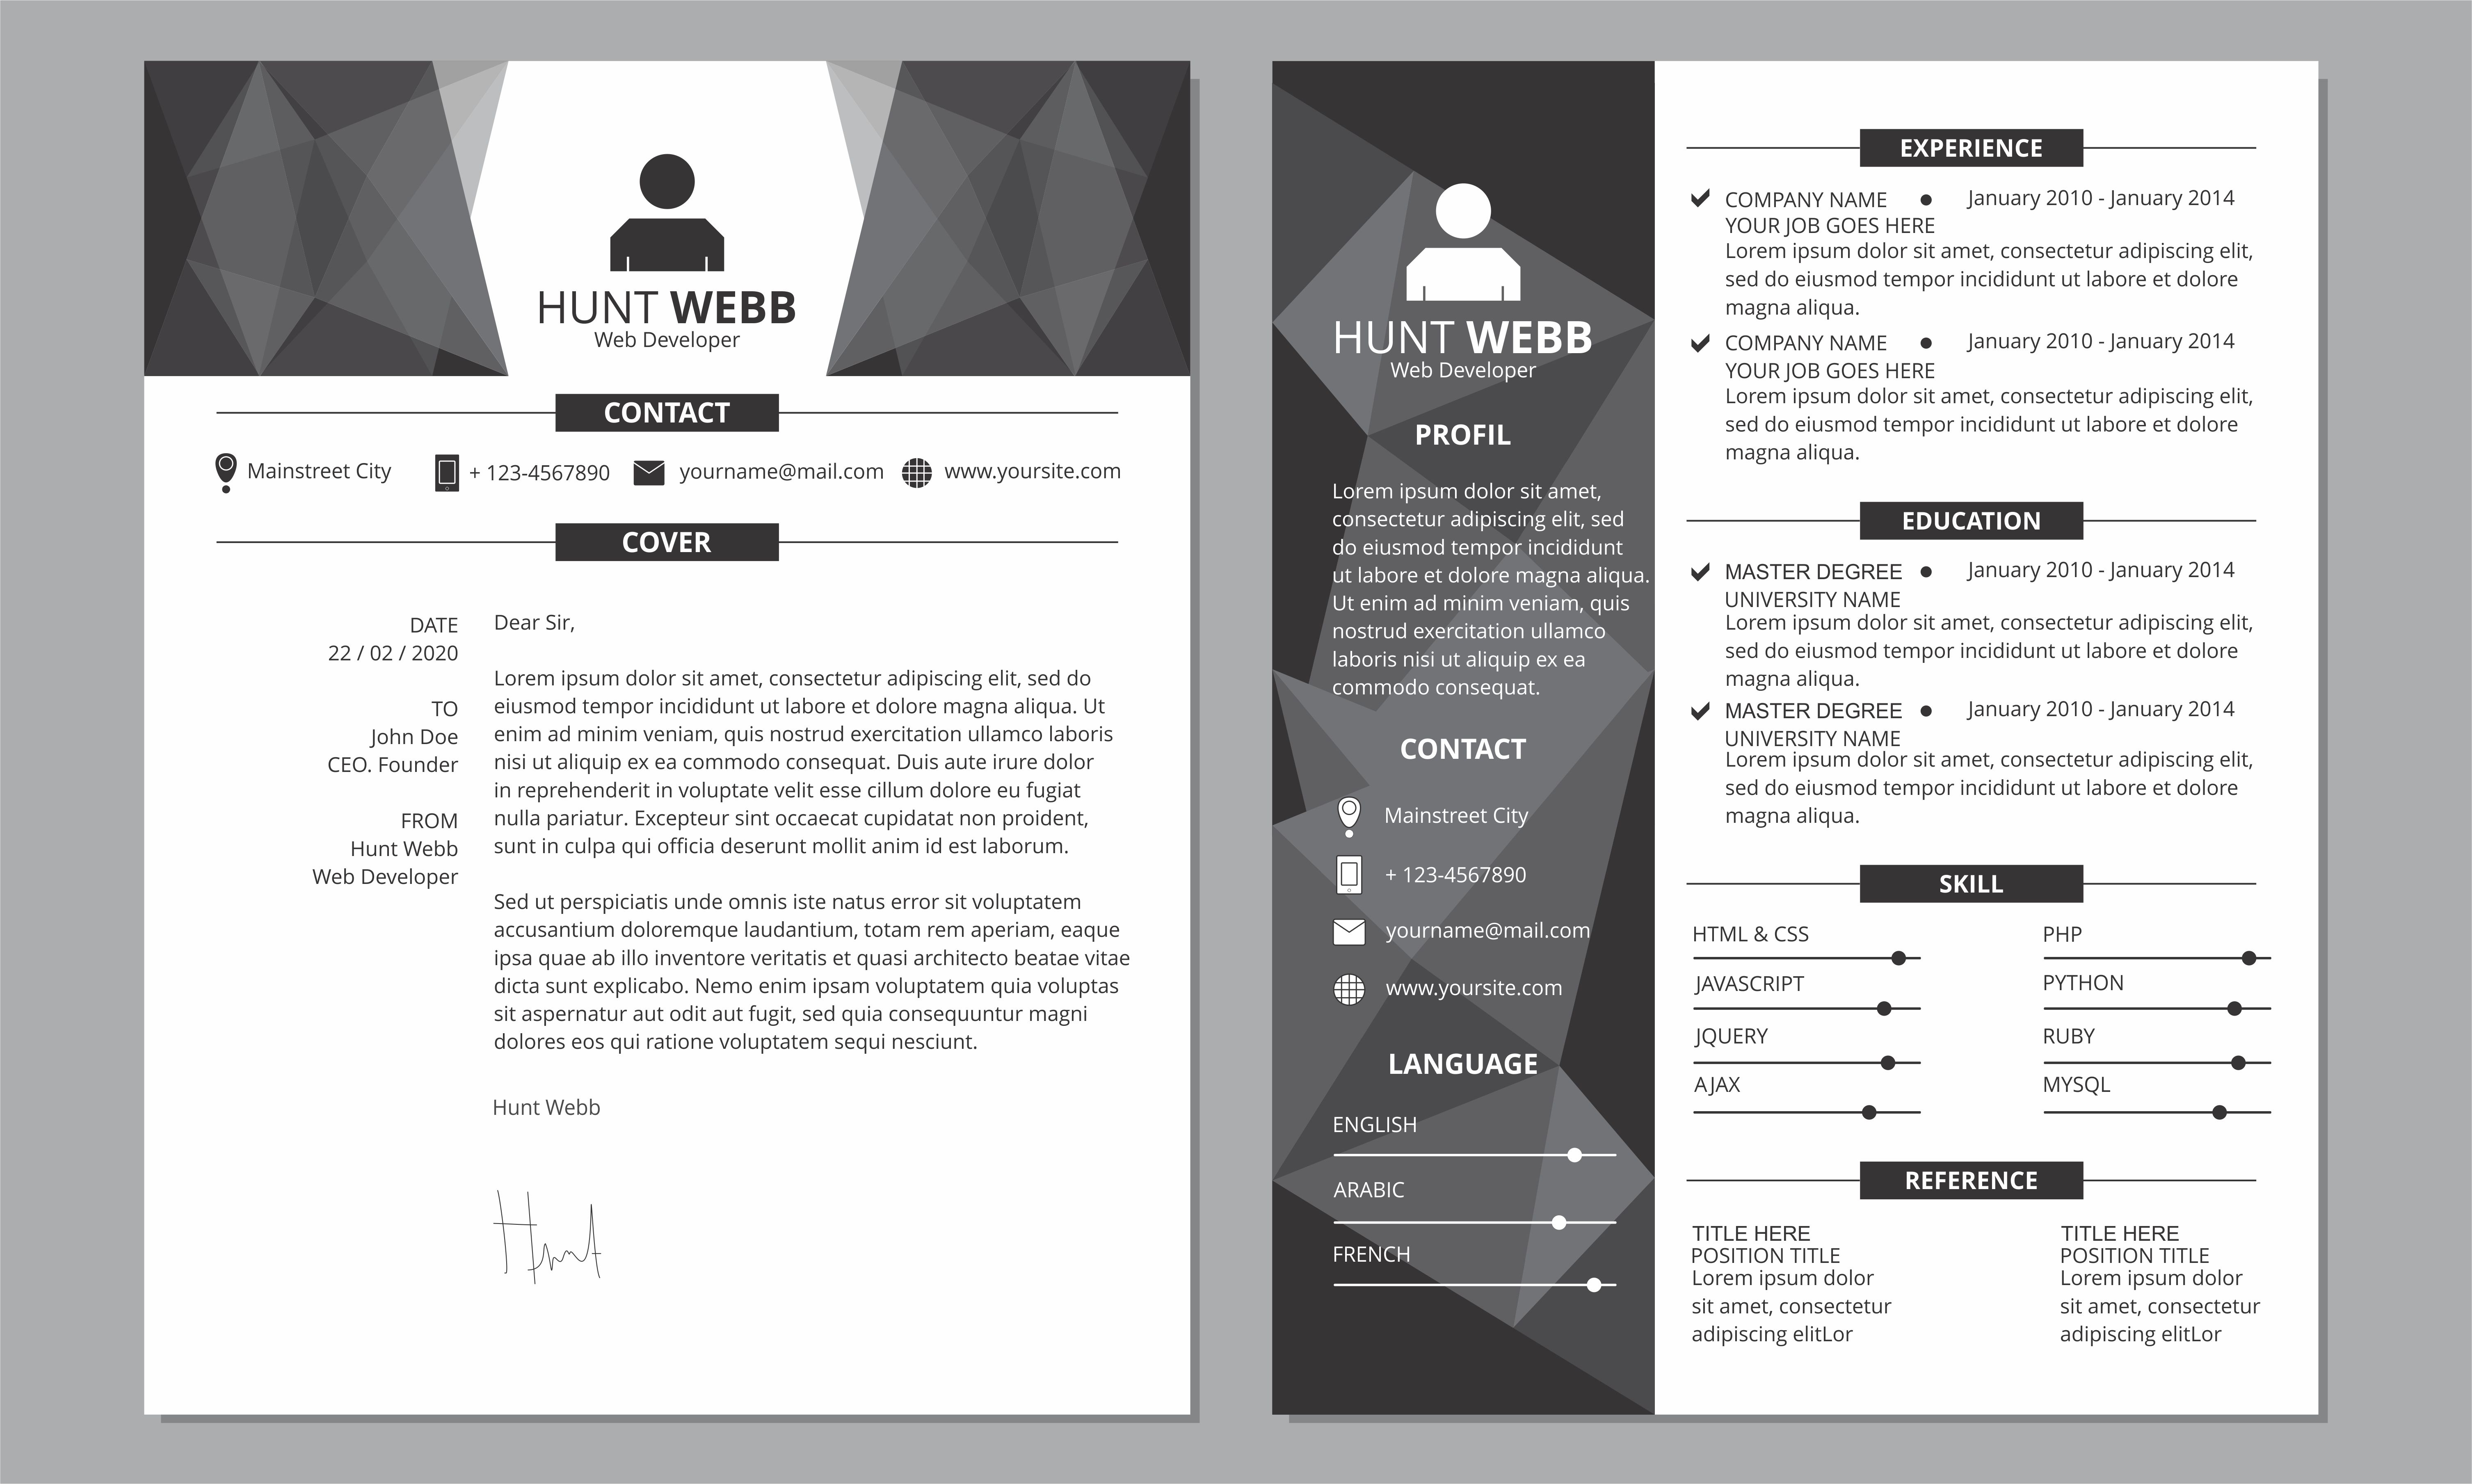 cv resume dark side and cover dark header